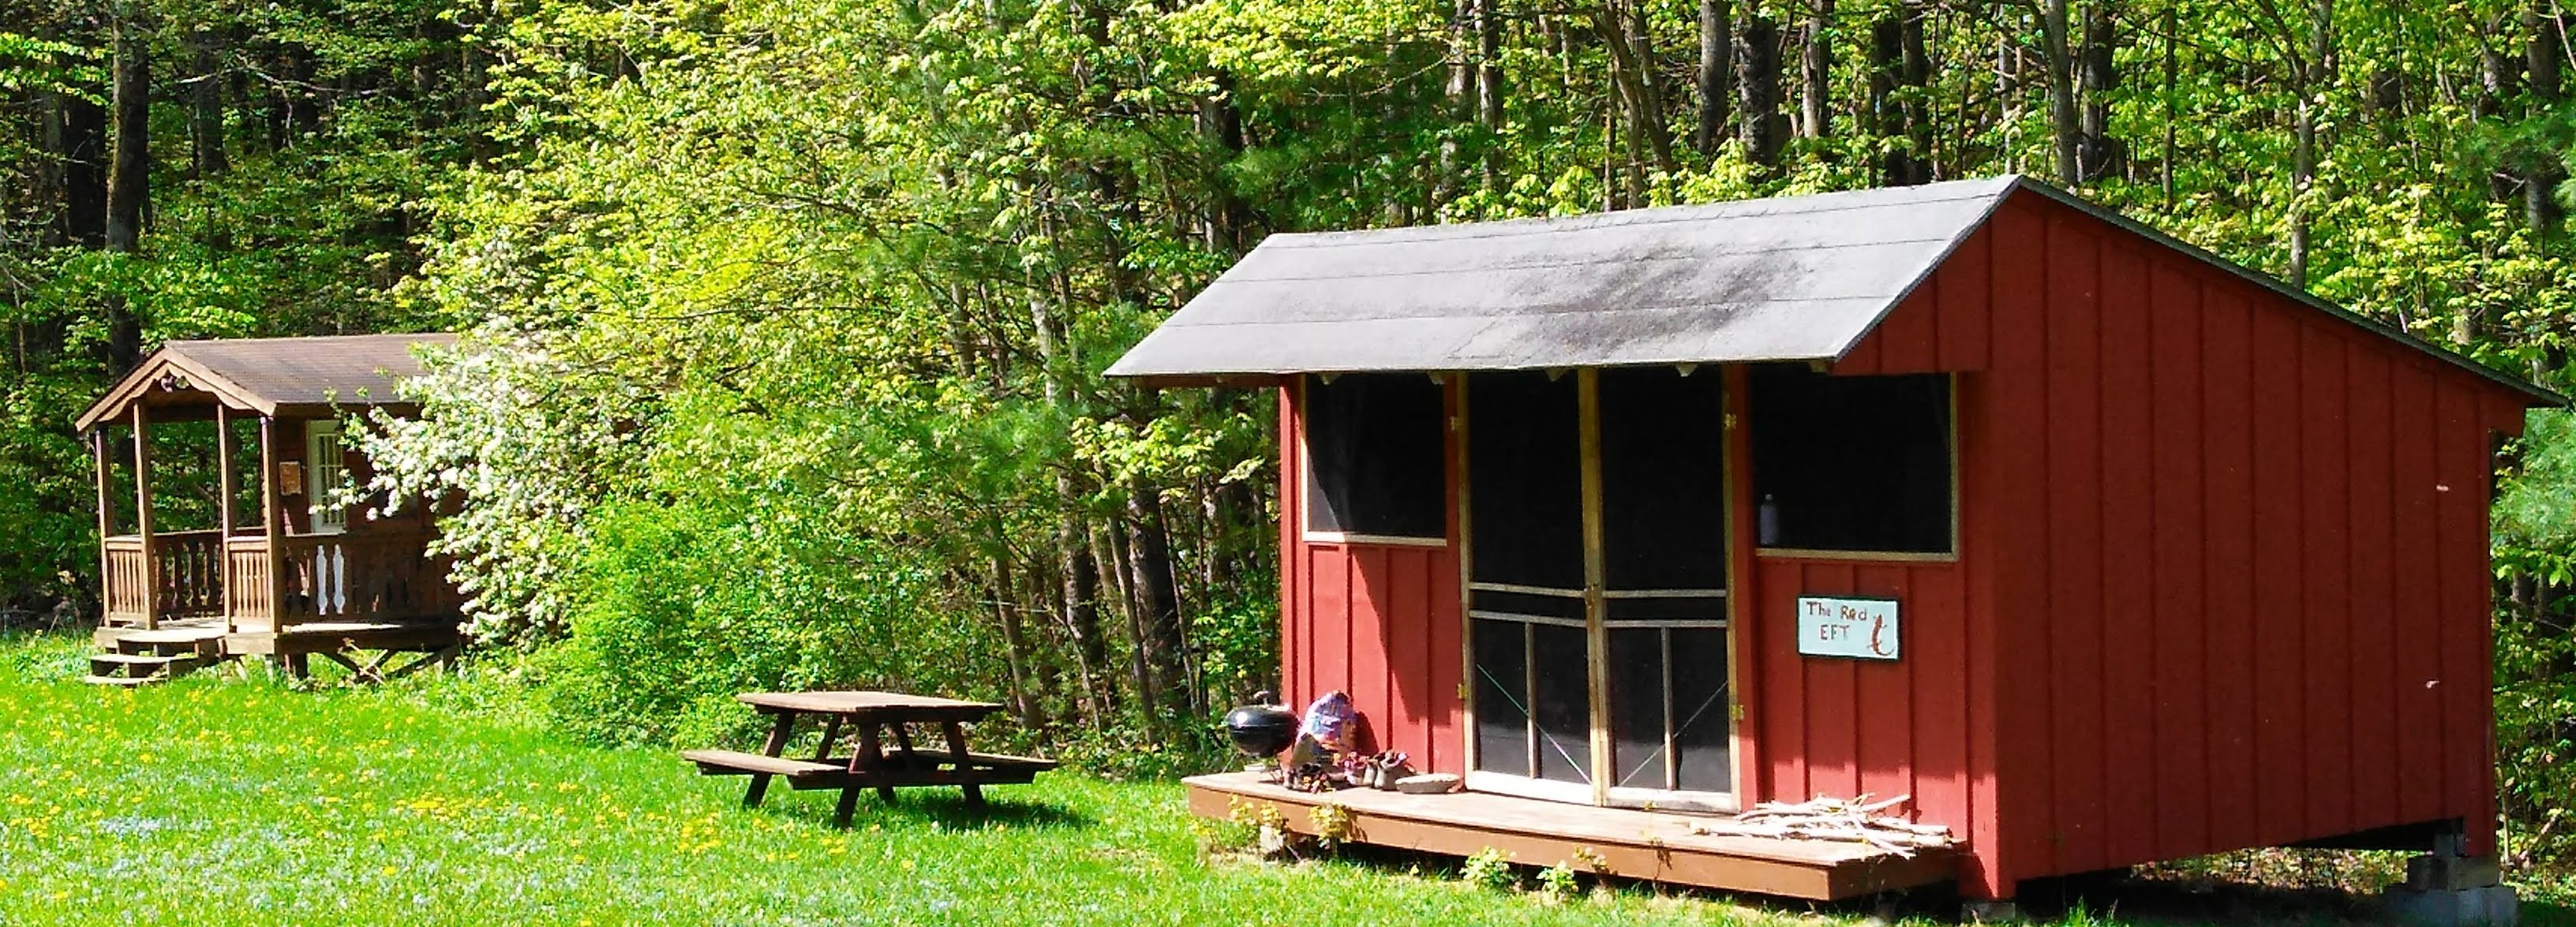 Woodland Campground RE-OPENS IN MAY 2021